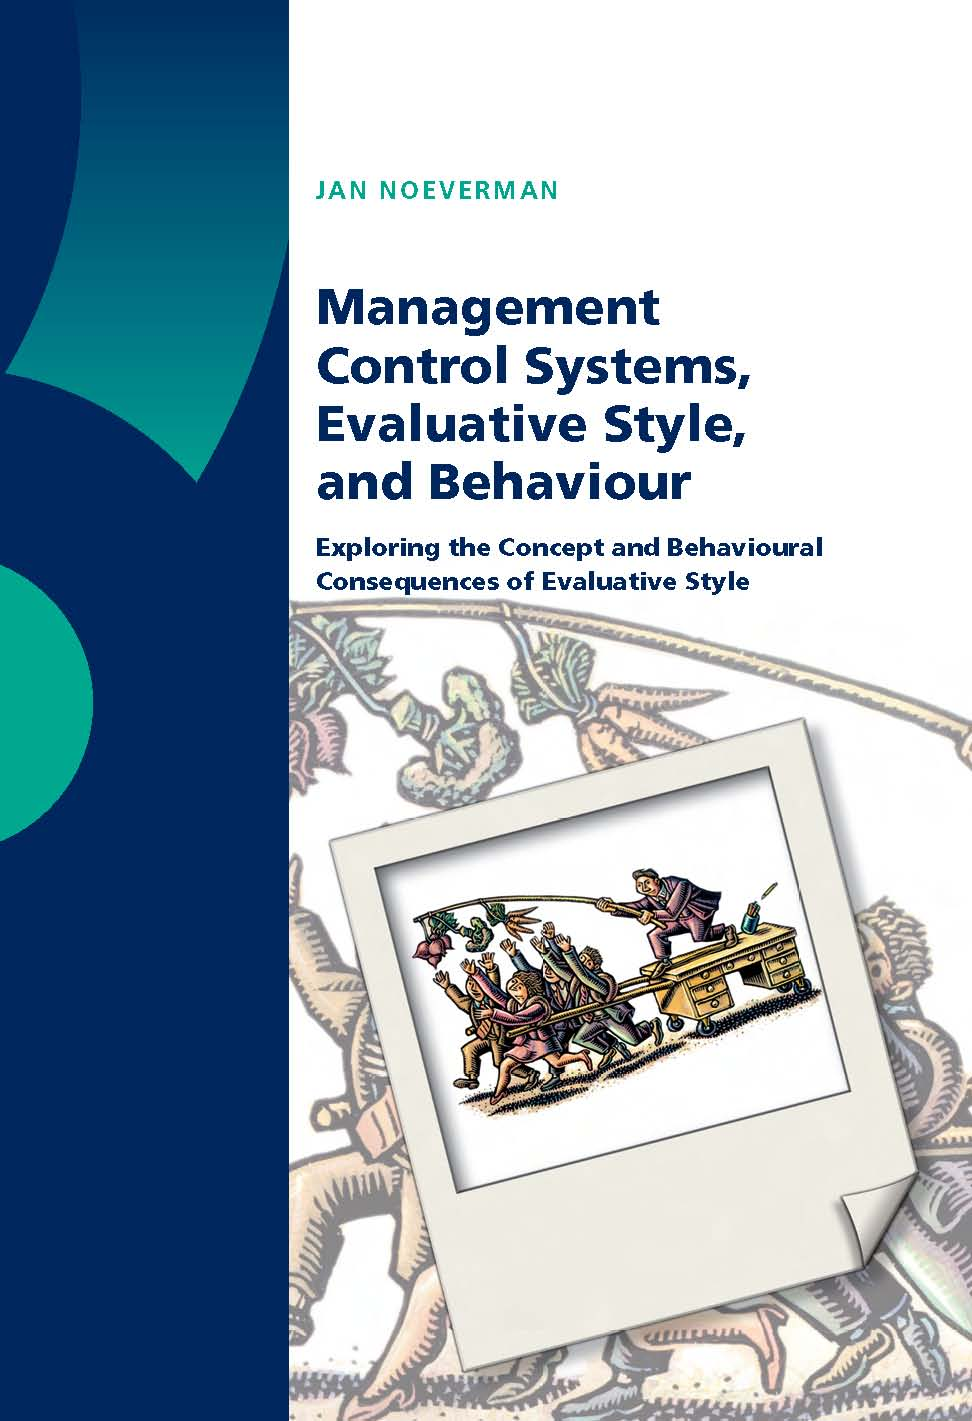 Management Control Systems, Evaluative Style, and Behaviour: Exploring the Concept and Behavioural Consequences of Evaluative Style